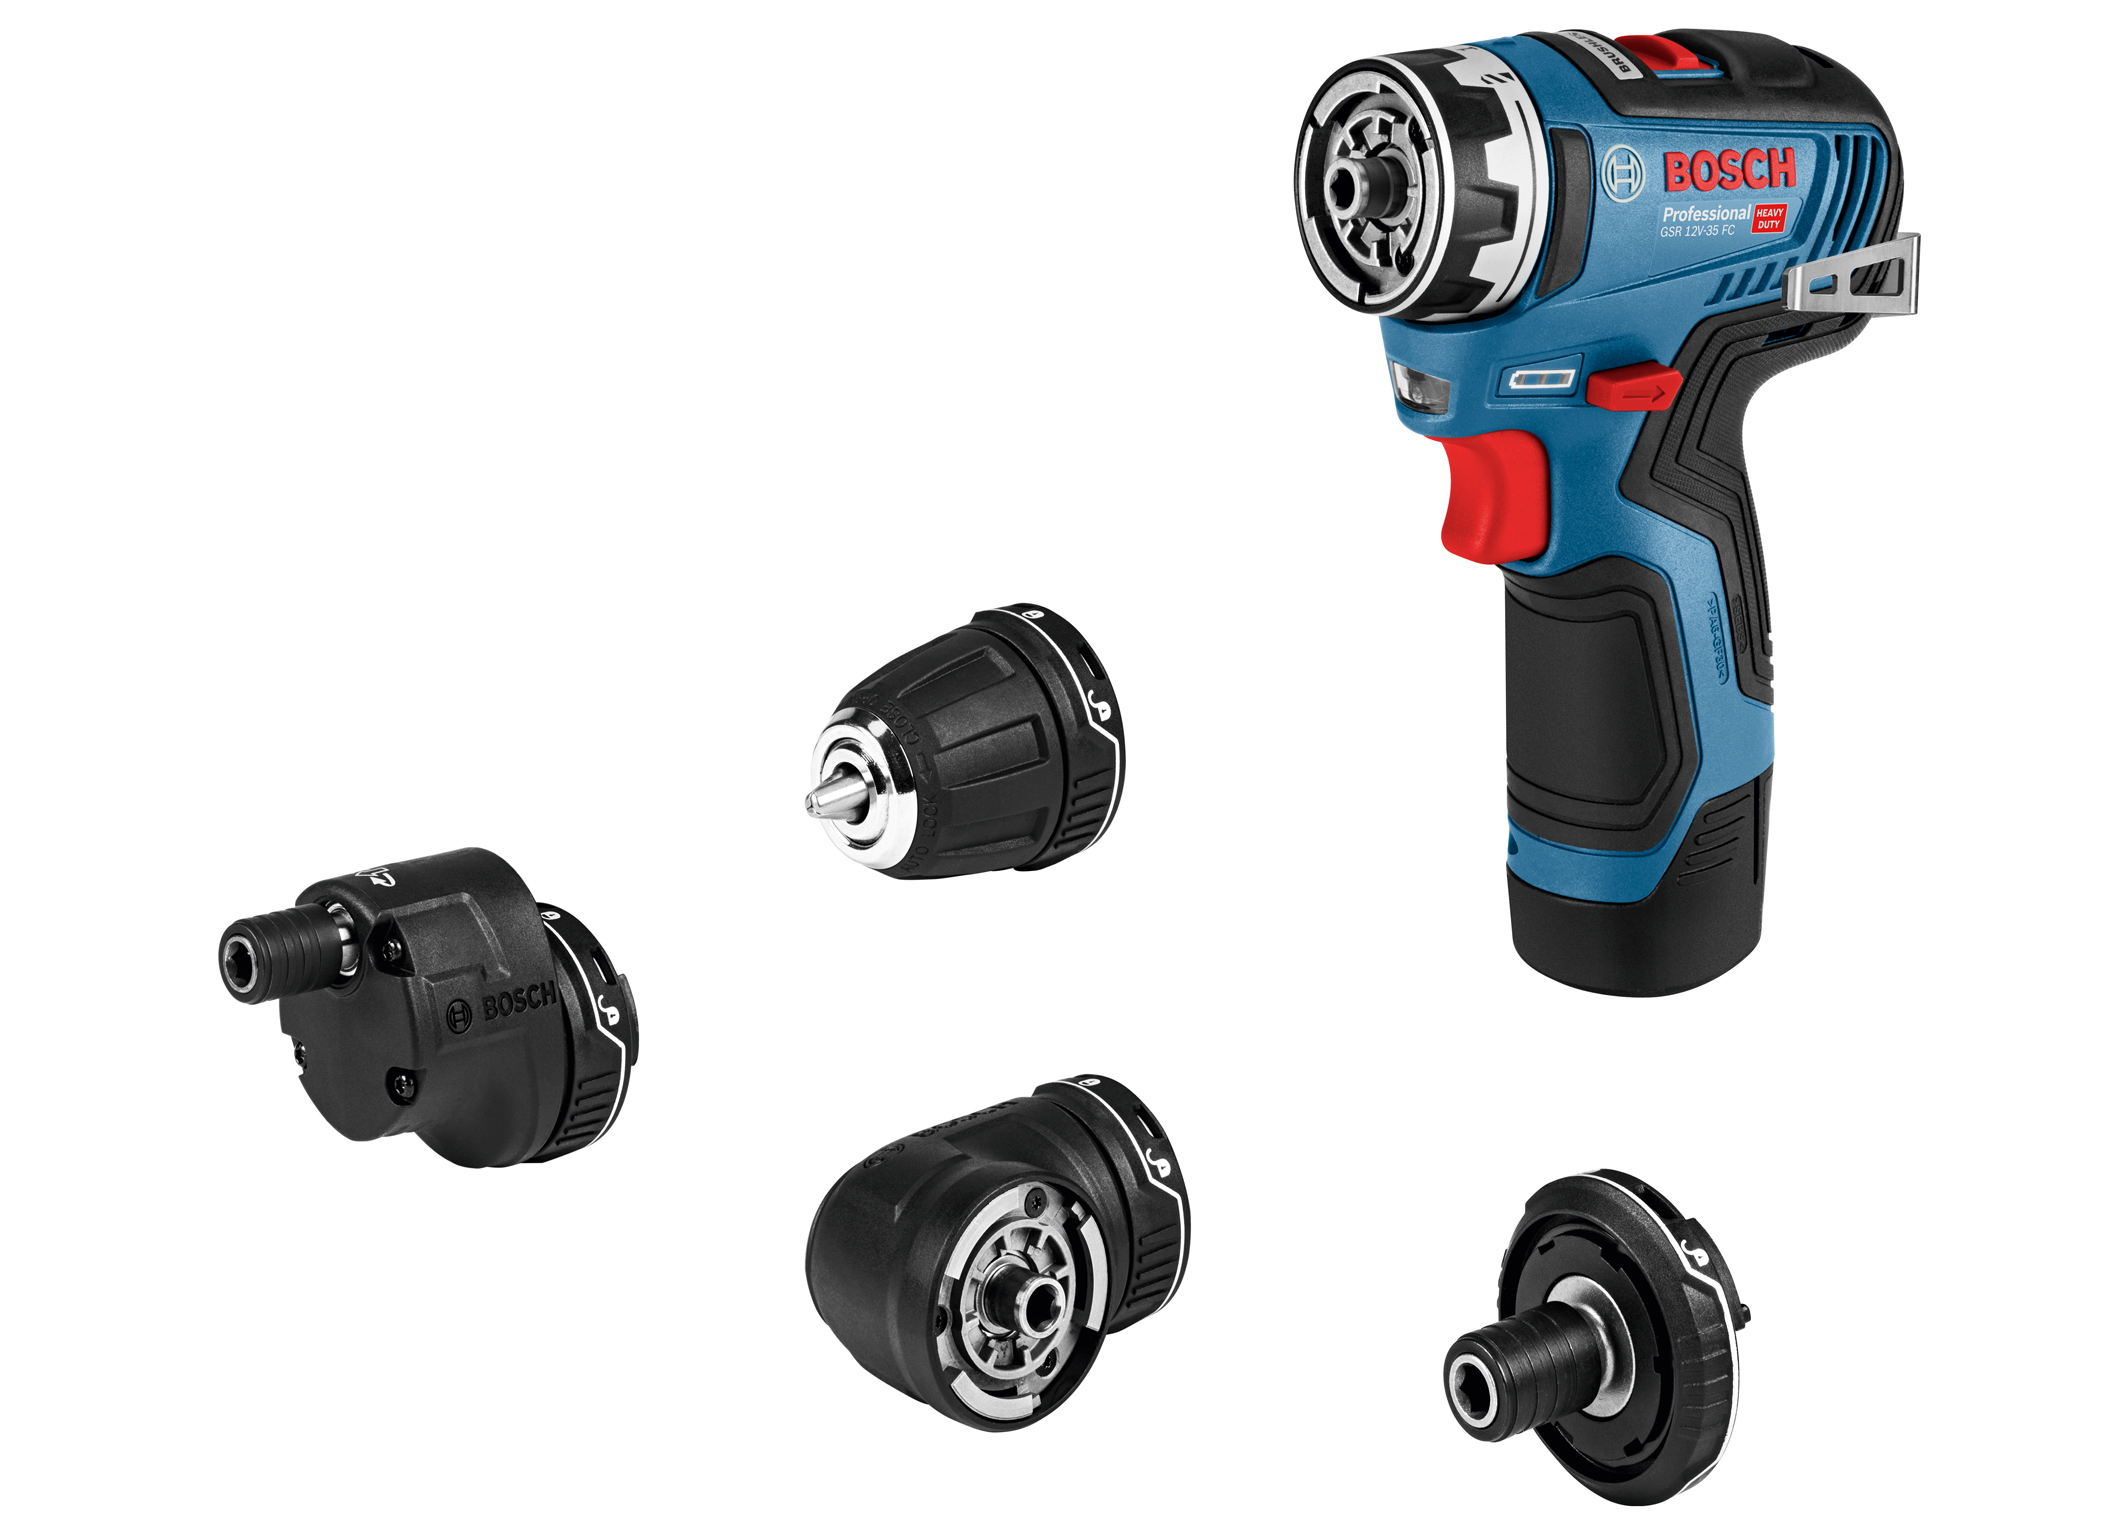 The new GSR 12V-35 FC Professional cordless drill/driver: Proven flexibility thanks to four system adapters